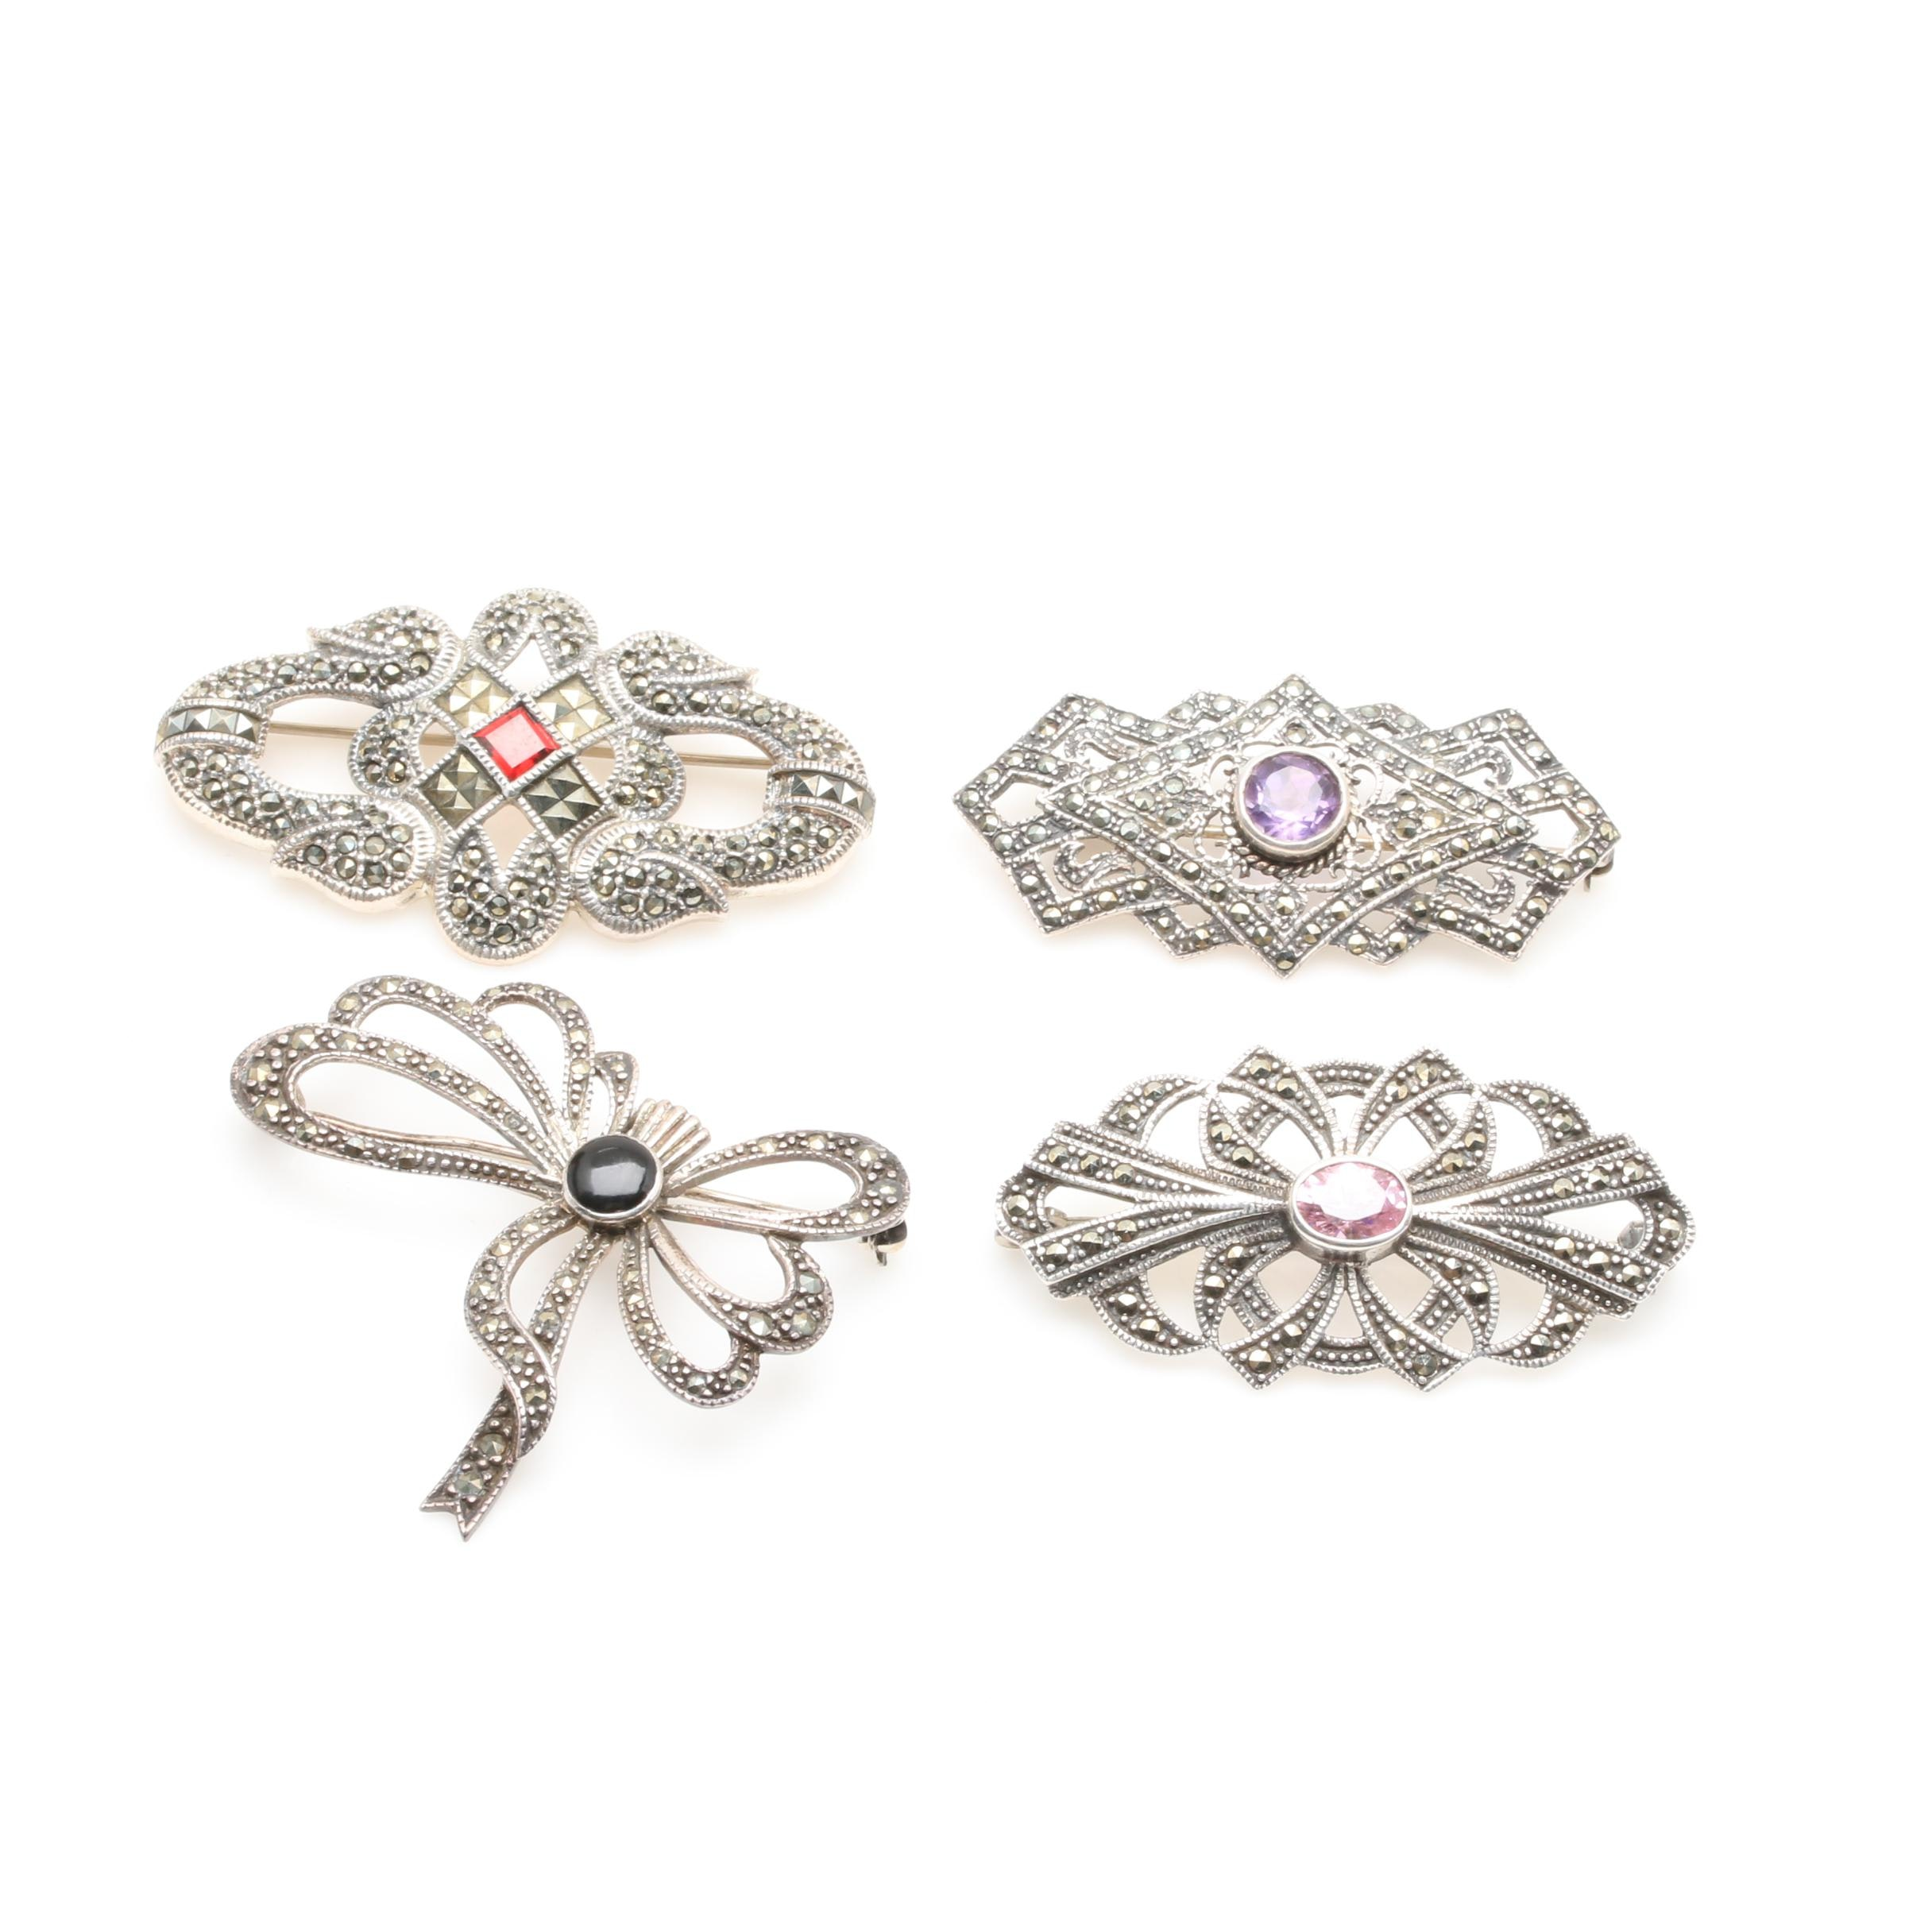 Collection of Sterling Silver Brooches Including Judith Jack